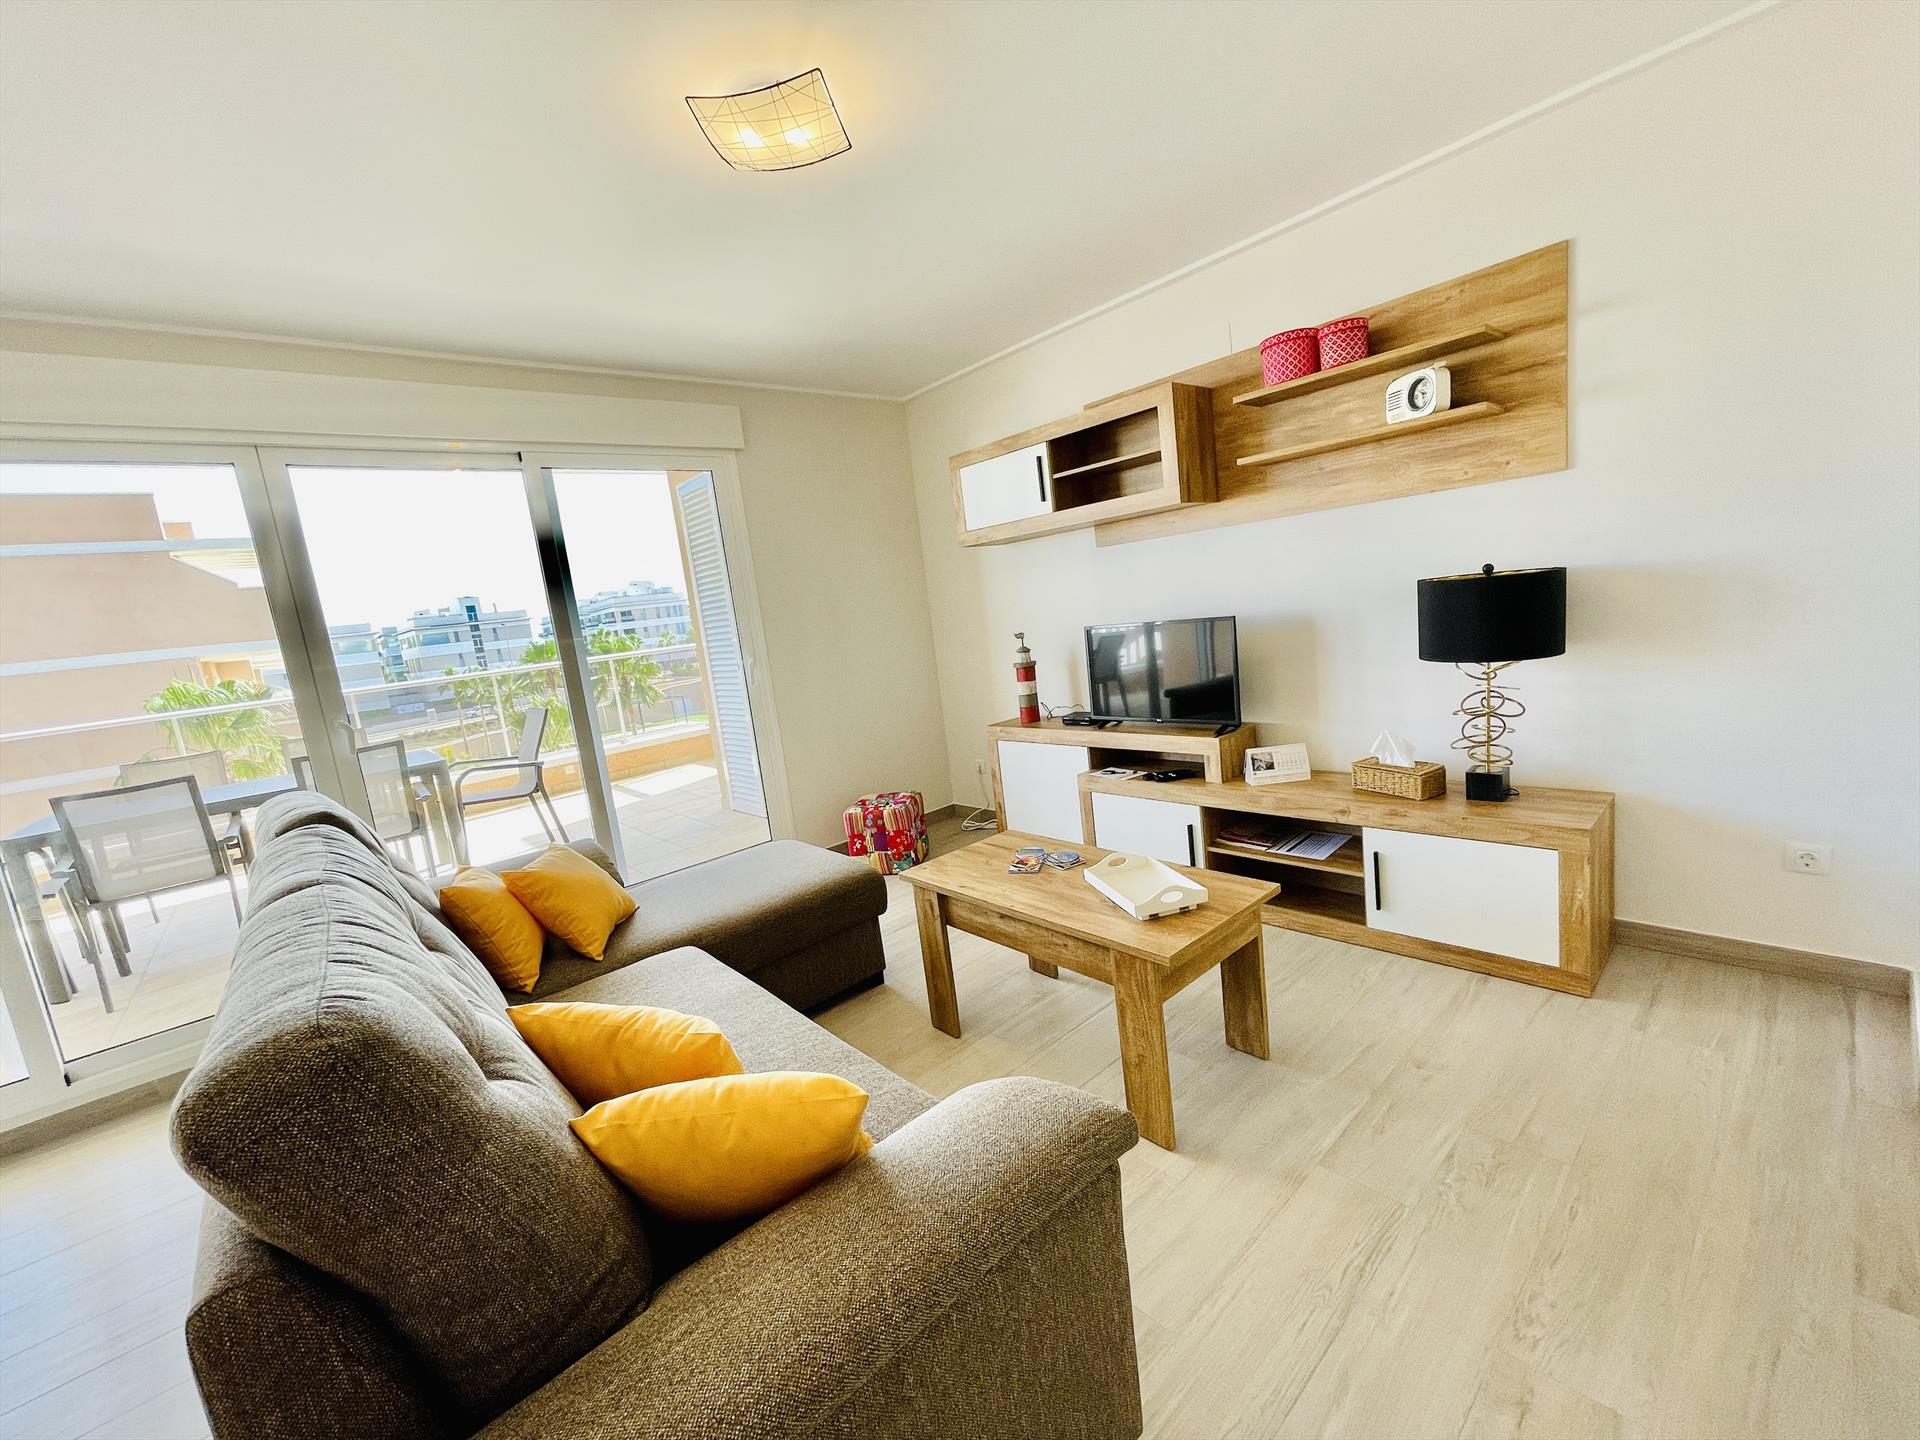 Azul,Apartment in Orihuela Costa, on the Costa Blanca, Spain  with communal pool for 6 persons.....